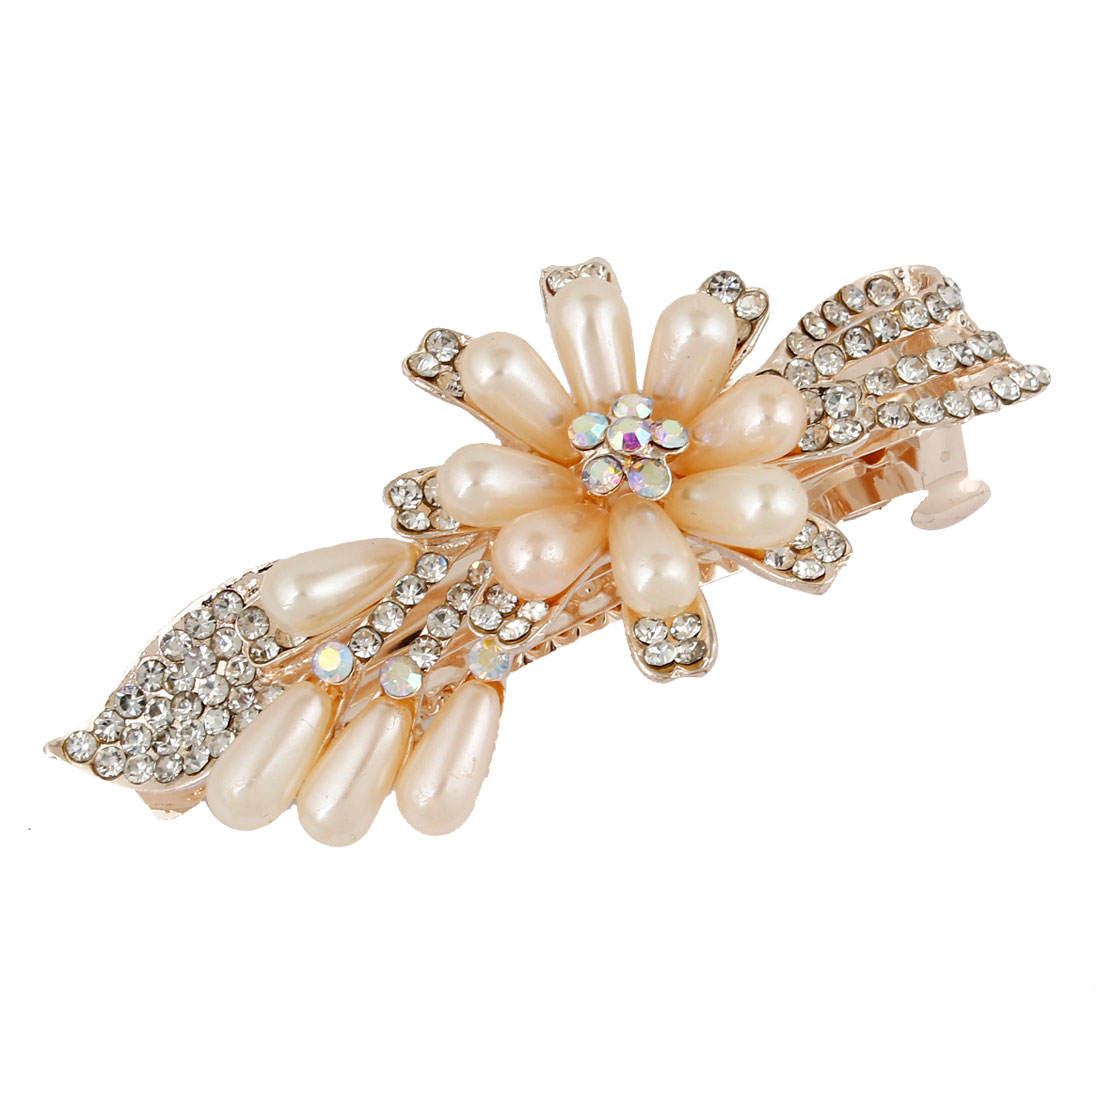 Banquet Shine Rhinestones Barrette French Hair Clip Ornament Ivory for Ladies